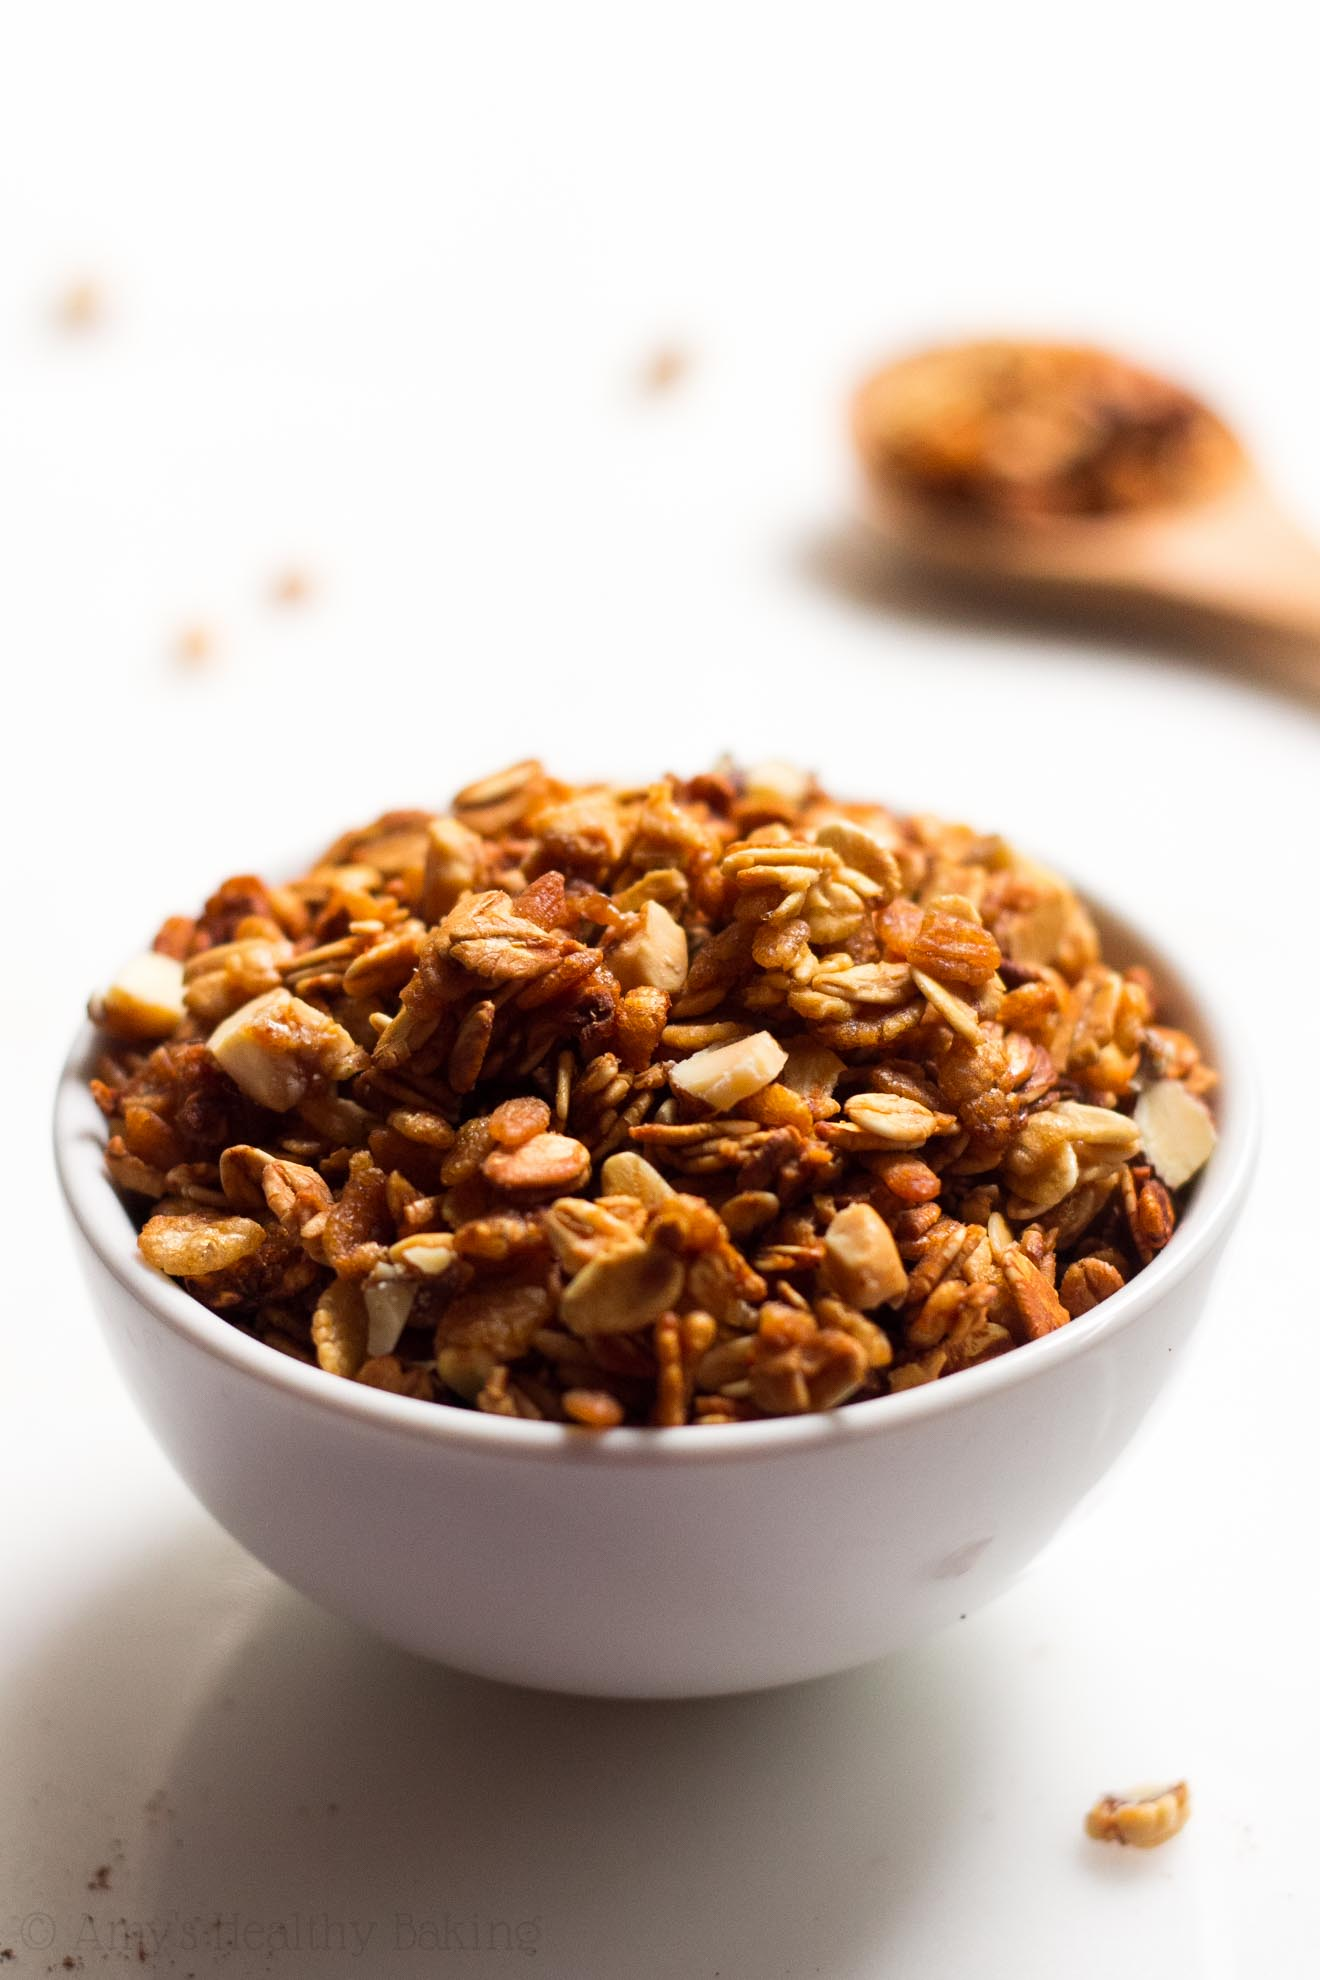 Simple Honey Nut Granola -- a healthier, 5-ingredient recipe for granola full of crunchy clusters! SO much better than store-bought!